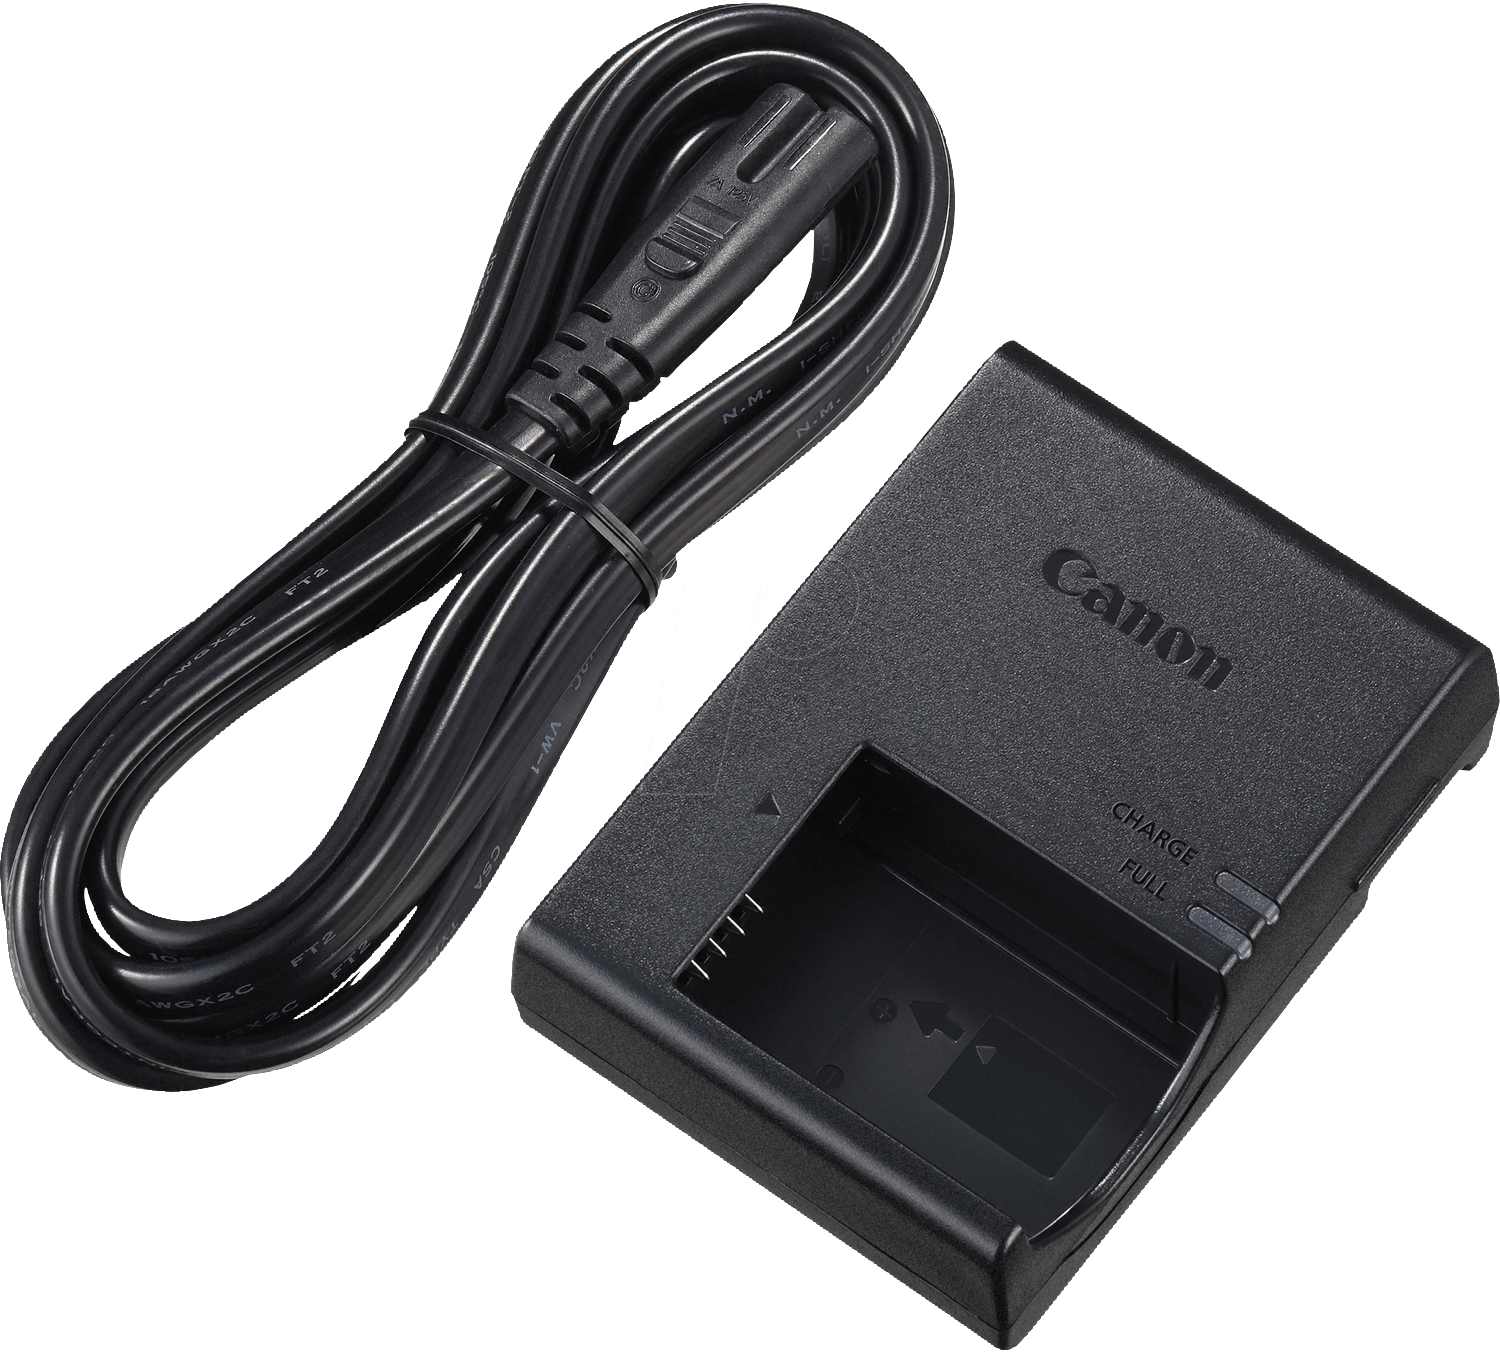 Canon Lc E17 Battery Charger For Canon Cameras At